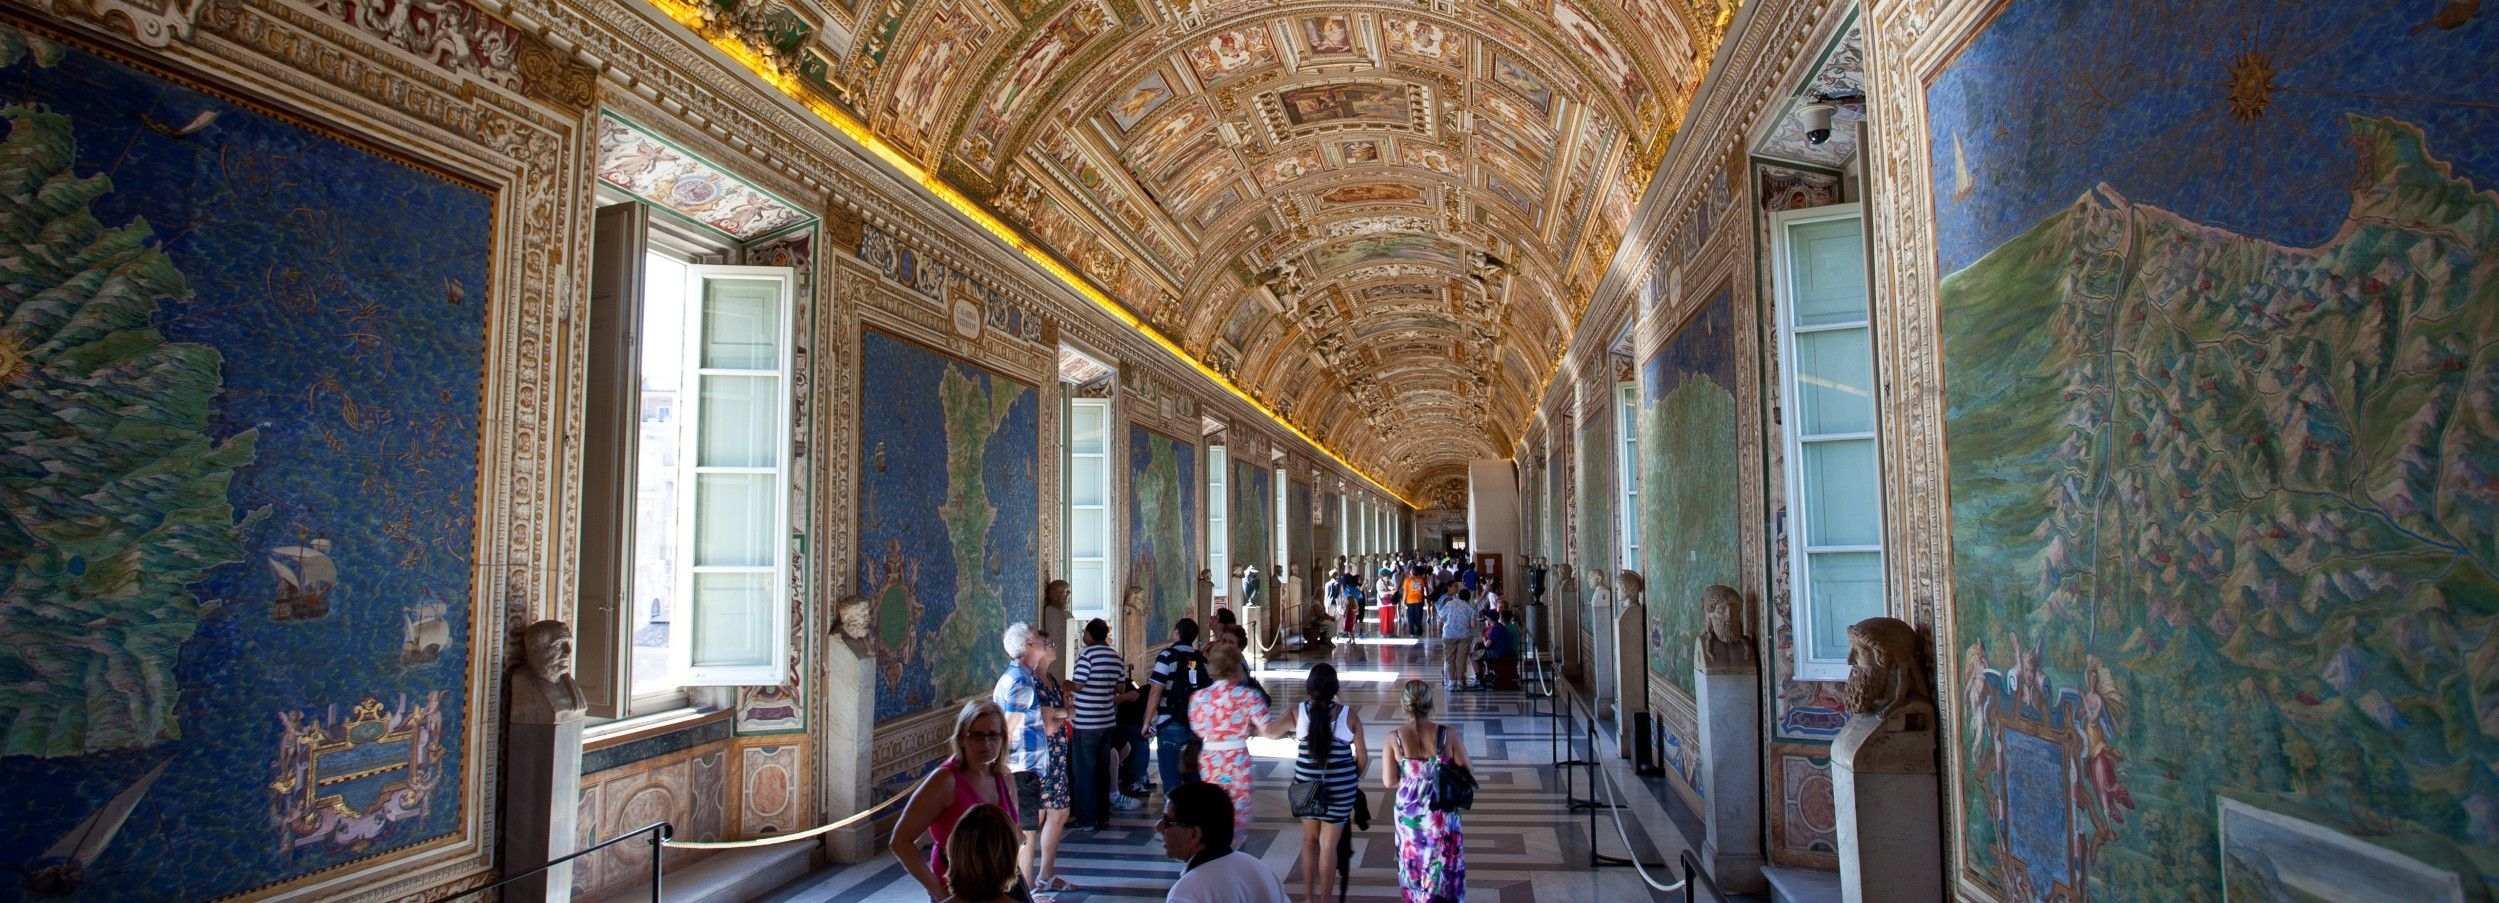 Best of the Vatican 3-Hour Small Group Tour